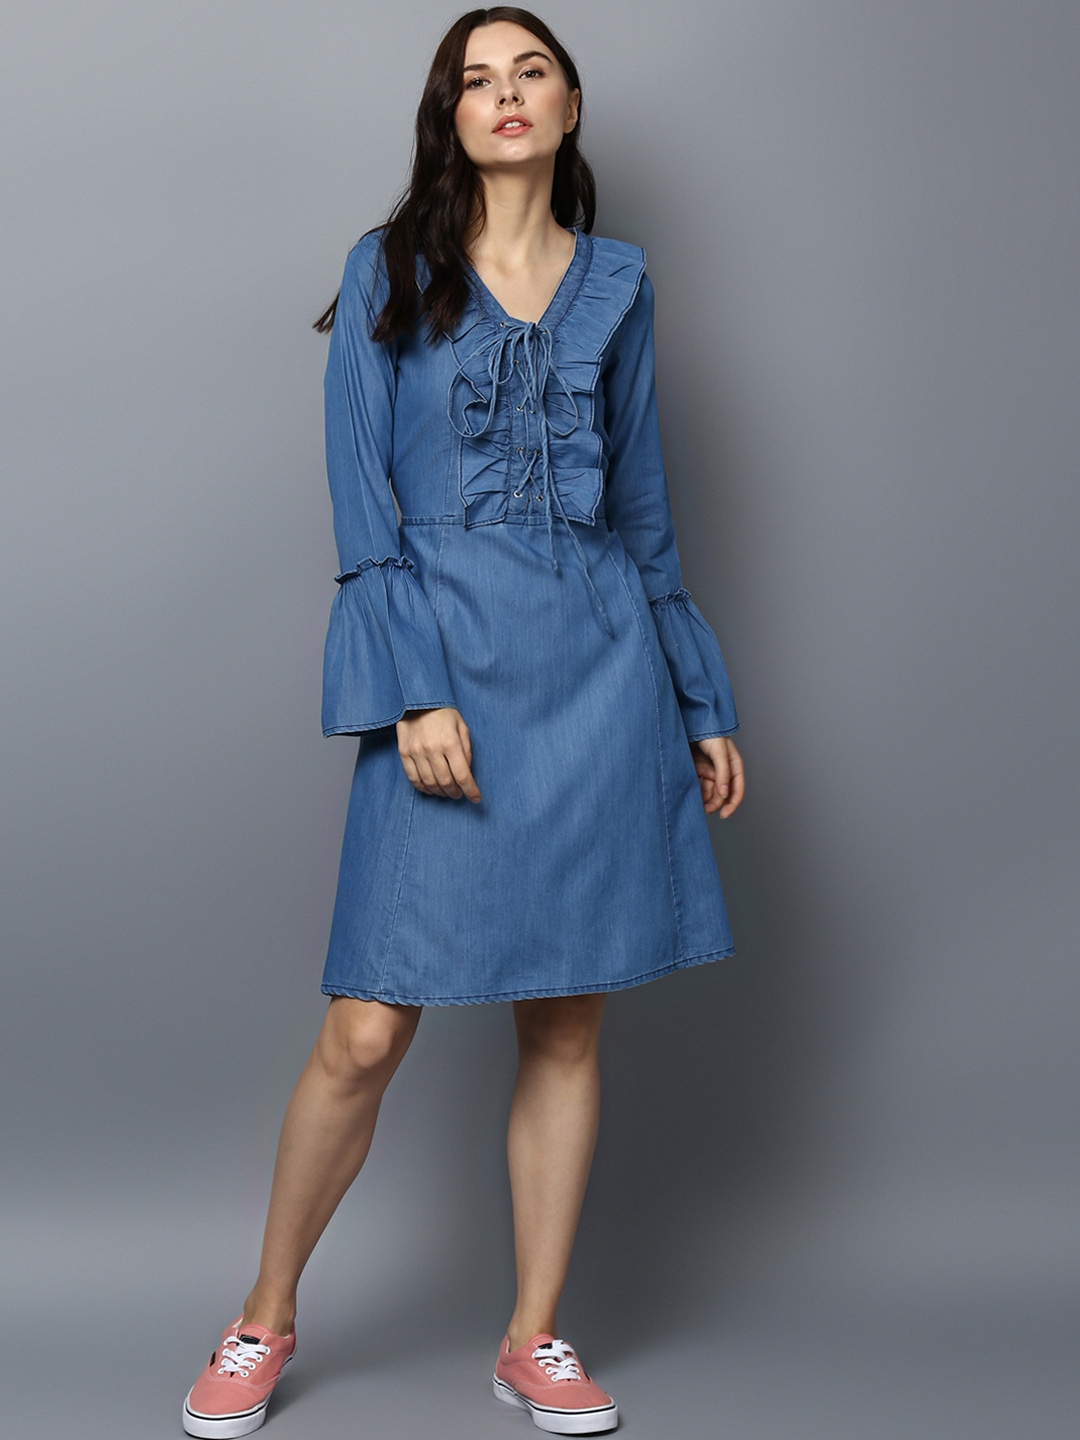 6226ddc7d64 Buy StyleStone Women Blue Solid Fit And Flare Dress - Dresses for ...